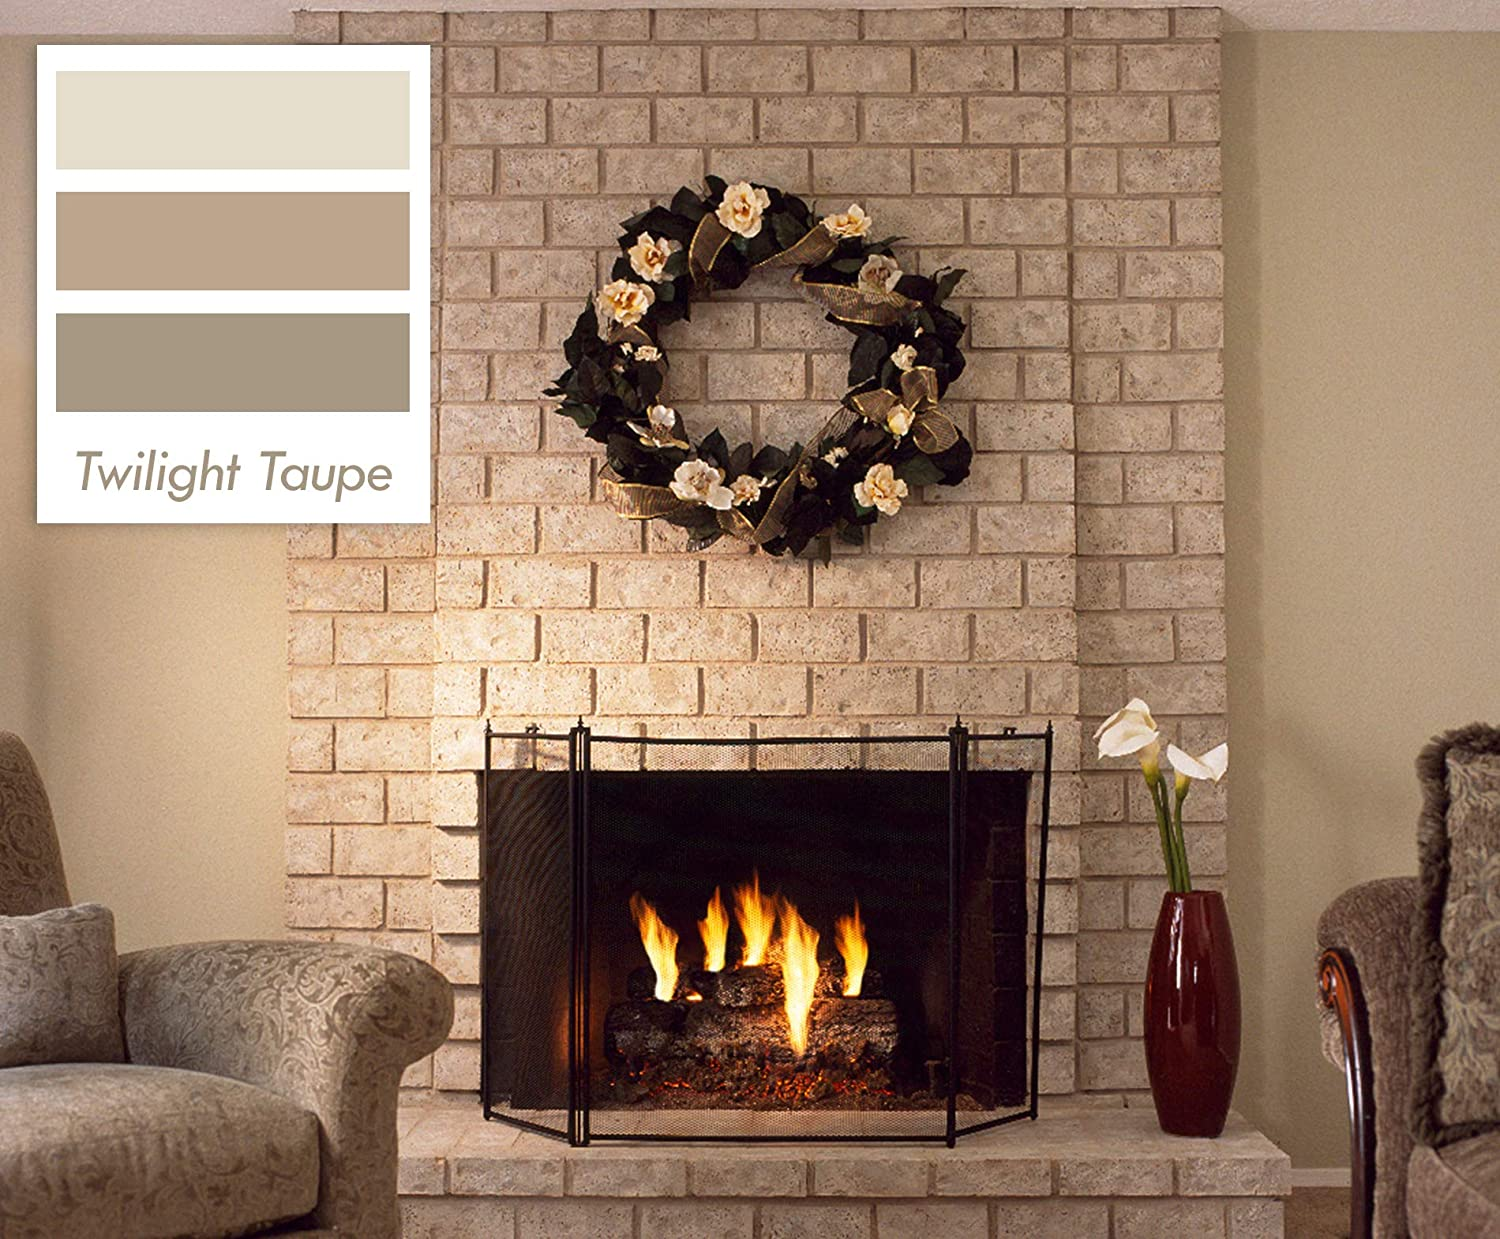 Brick Anew All In One Brick Fireplace Paint Kit Twilight Taupe